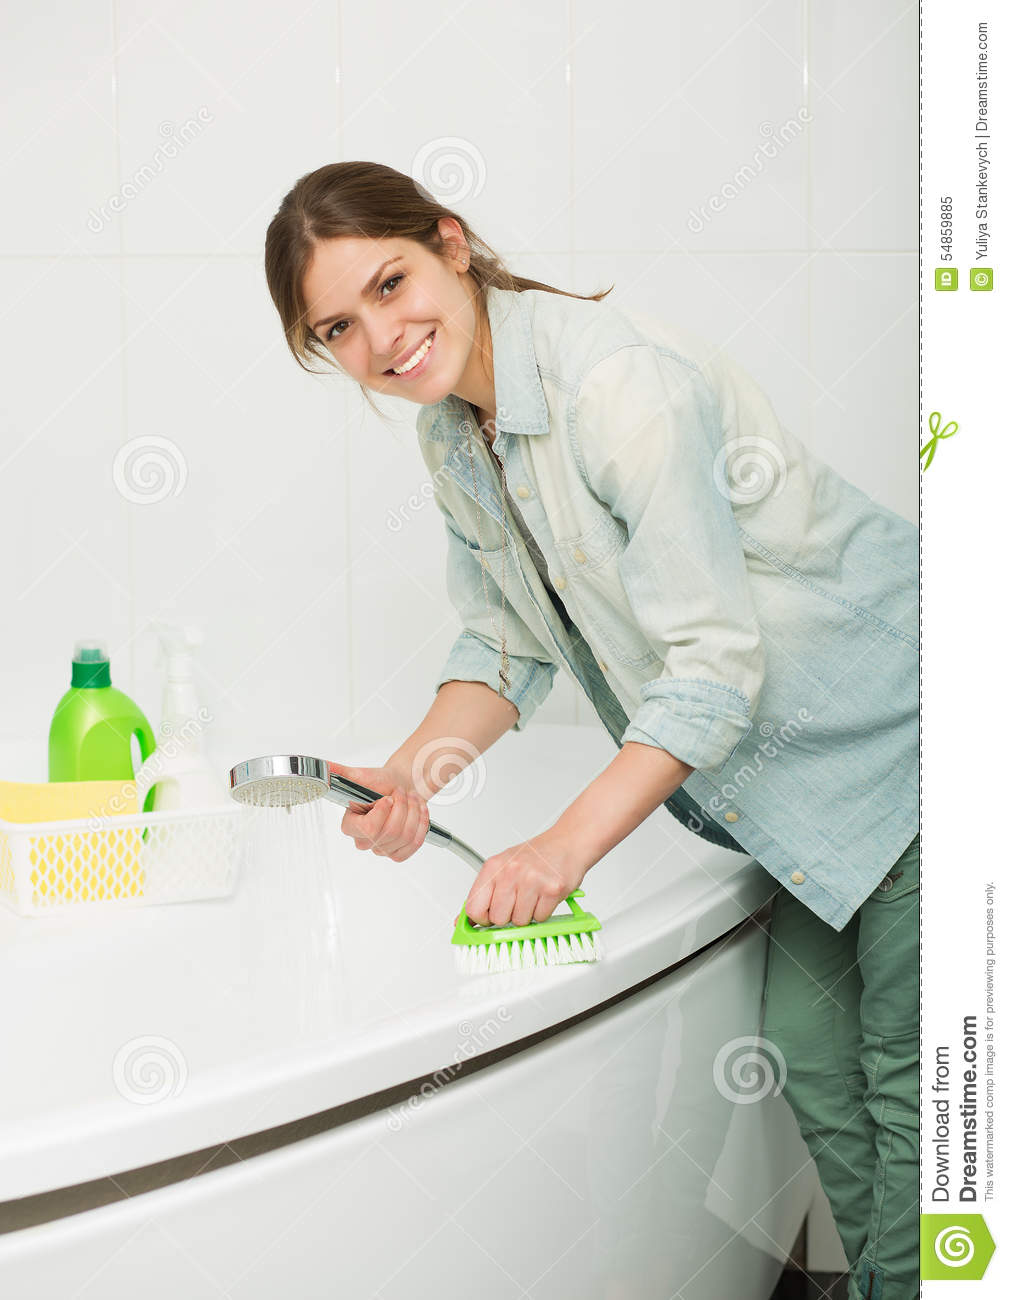 Hardworking young lady cleans the kitchen before pounding 10